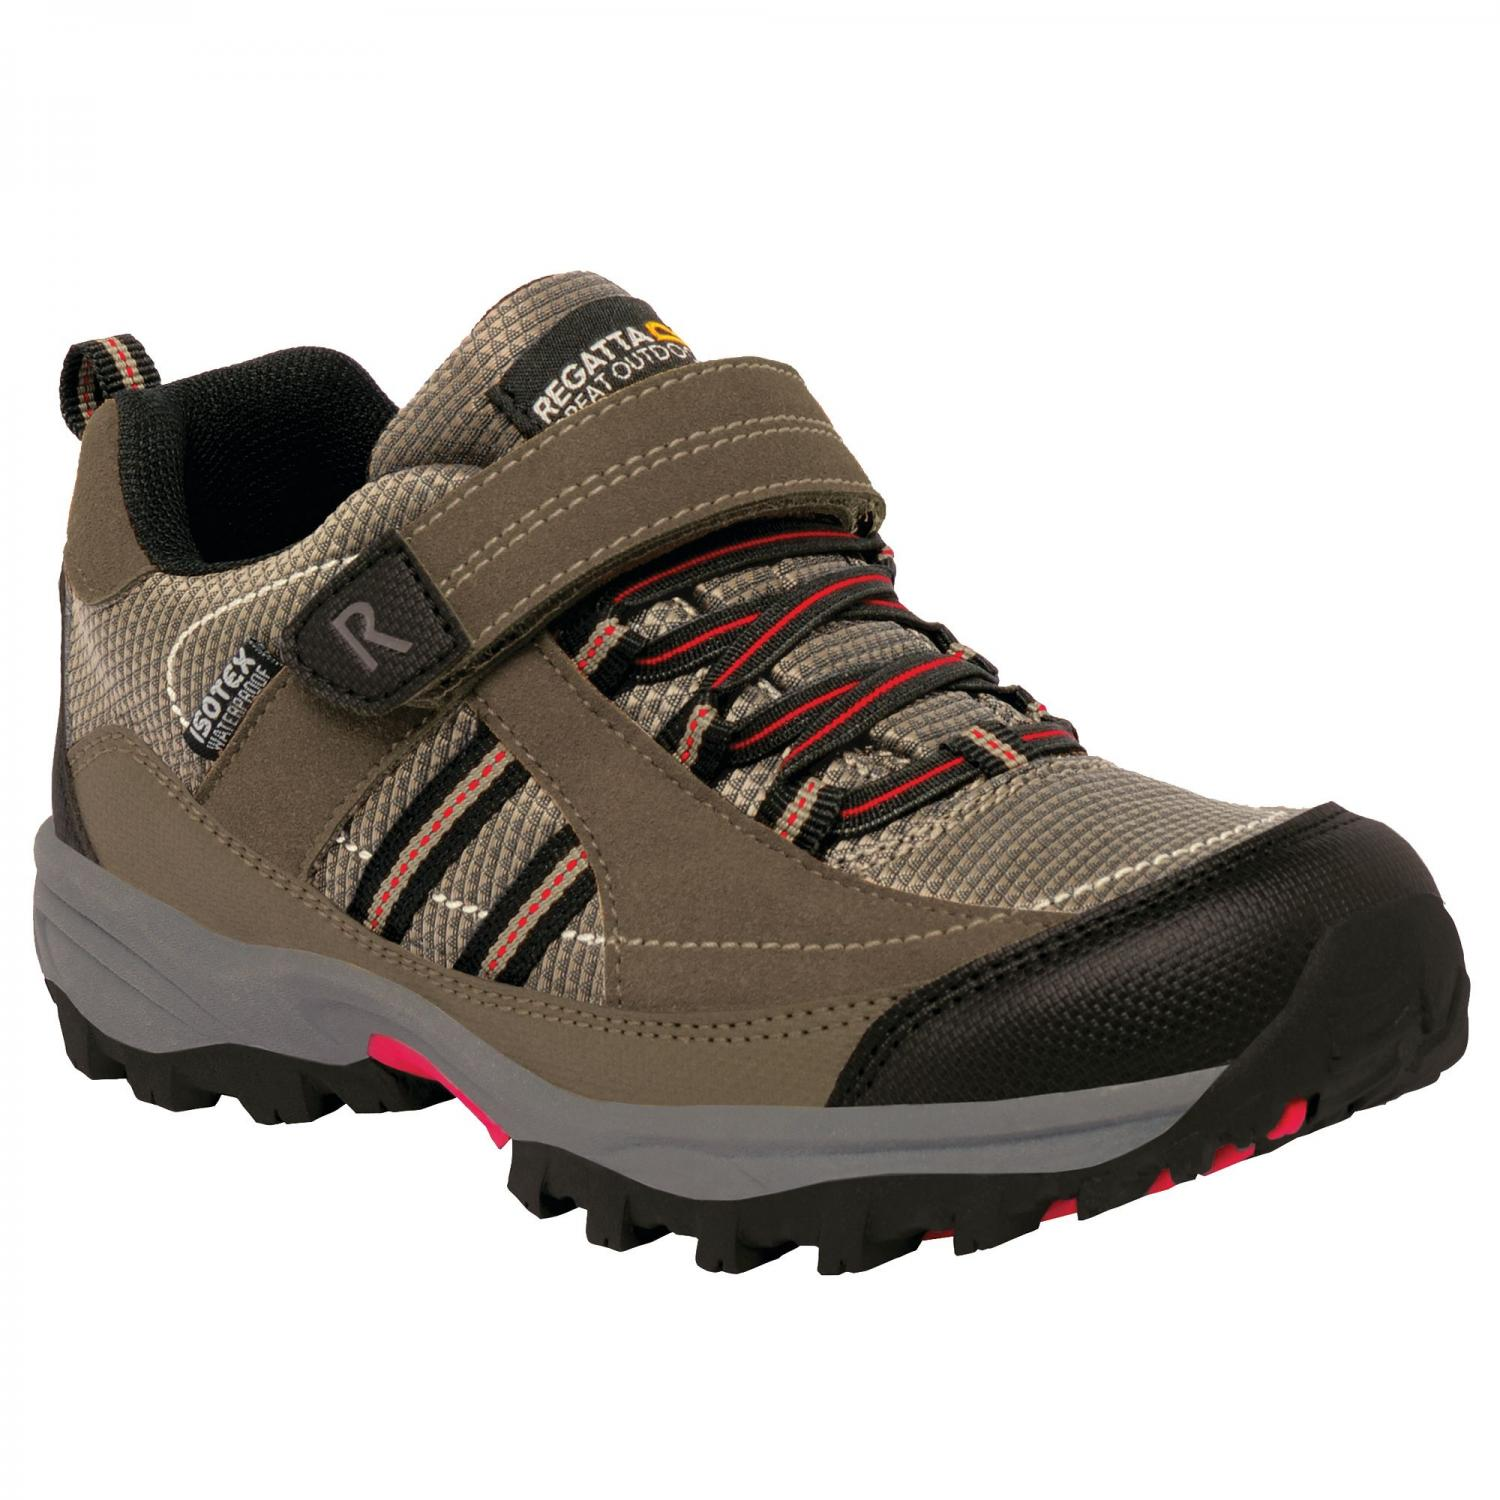 Trailspace II Low Junior Walking Shoe Kangaroo Black